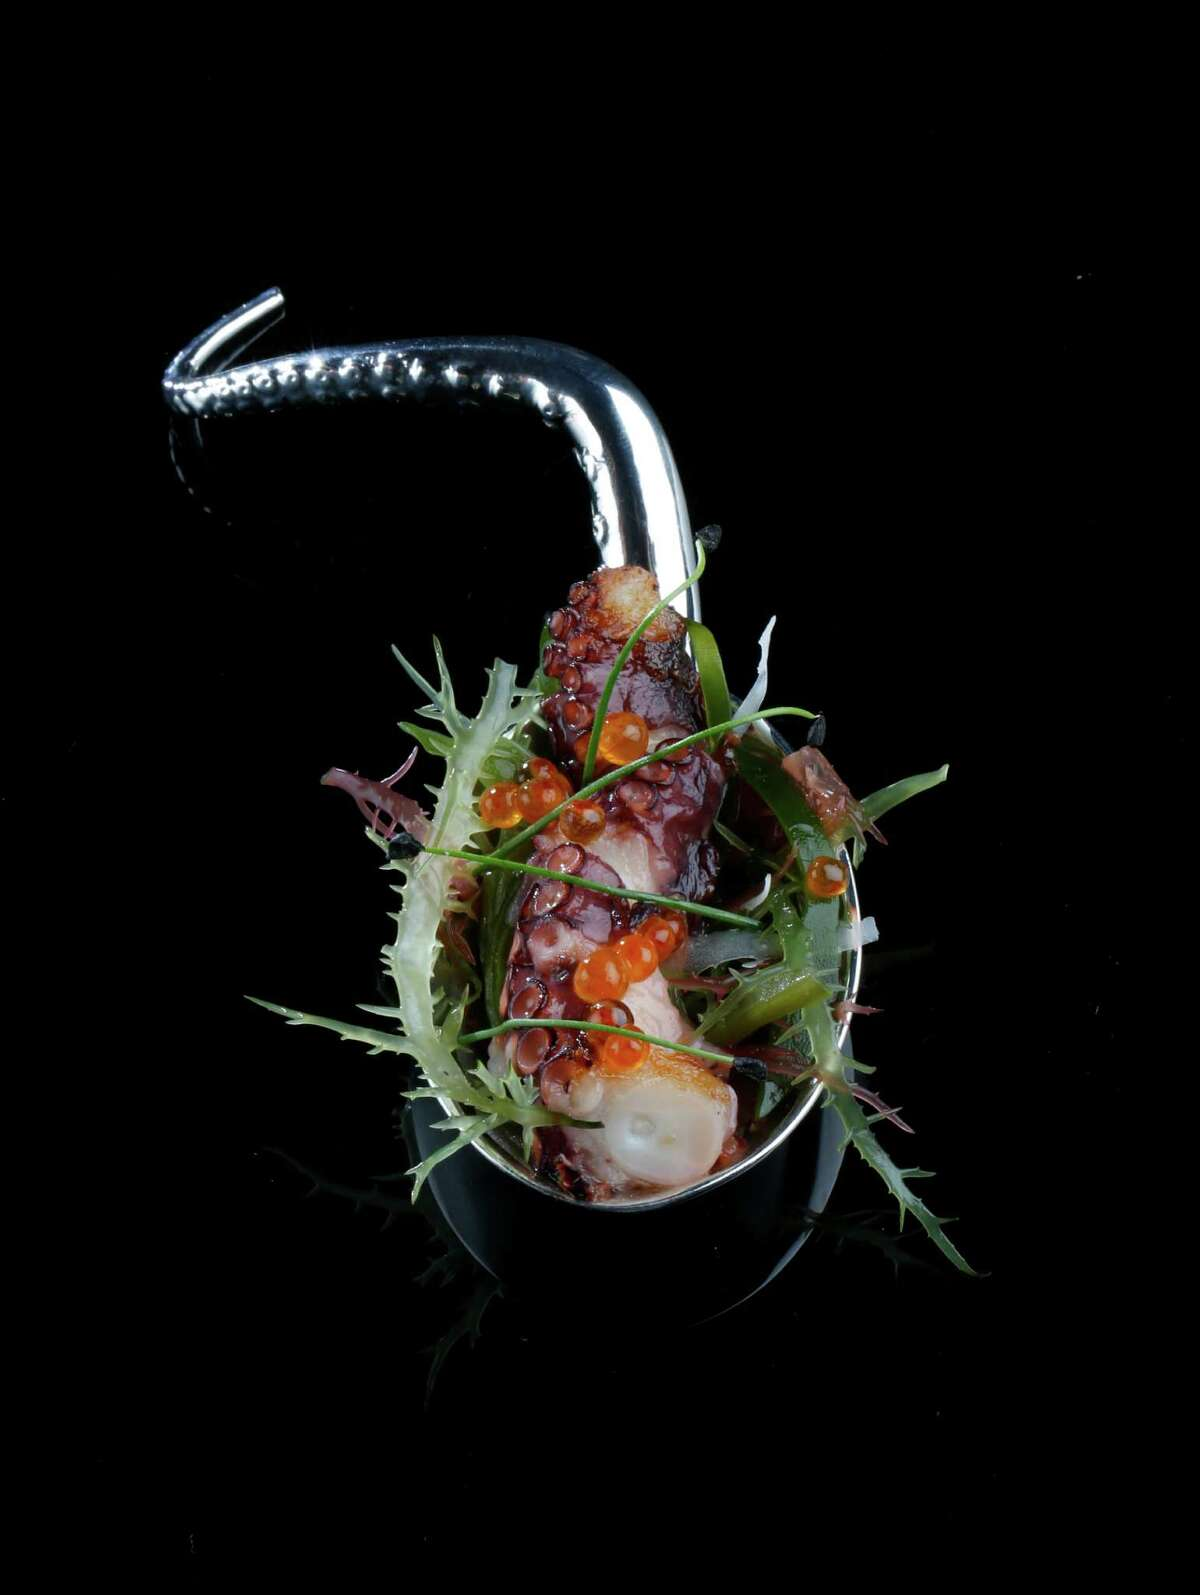 Octopus Spoon: The celebrated restaurant El Celler de Can Roca, which is also based in Spanish Catalonia, decided to go global and present a traveling dinner